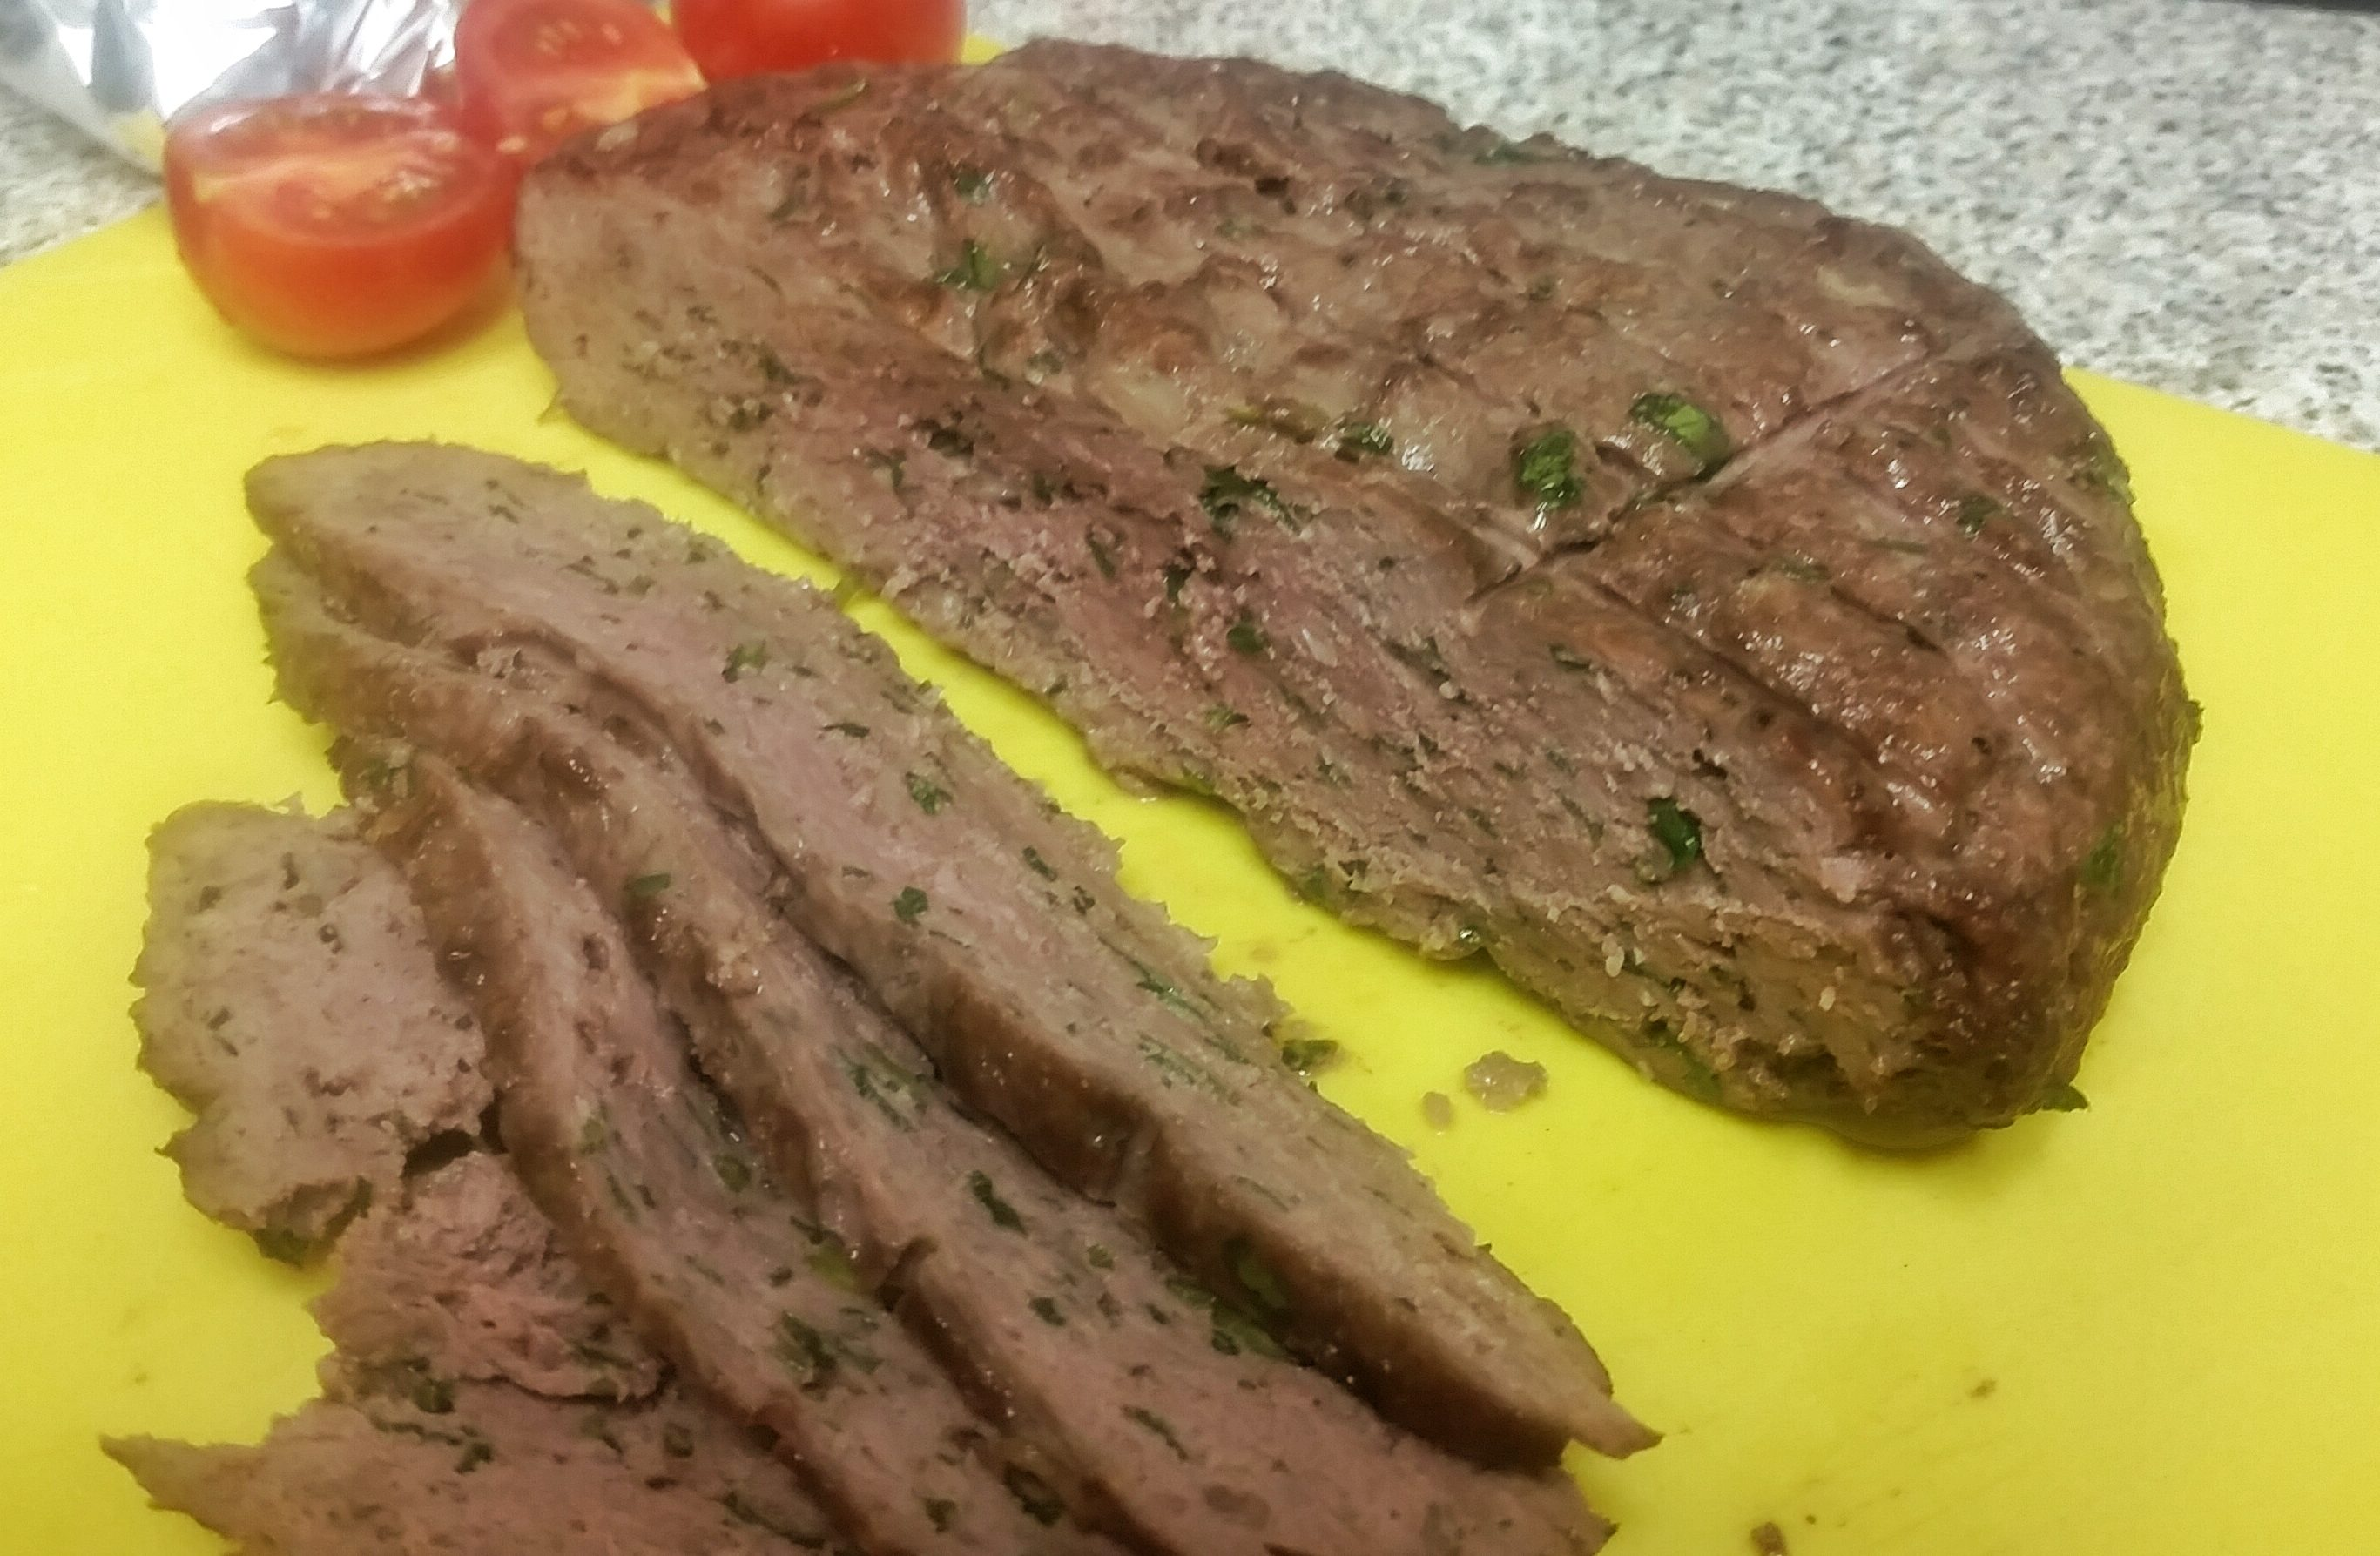 Homemade Gyro Meat. 1/2 lamb and 1/2 beef.